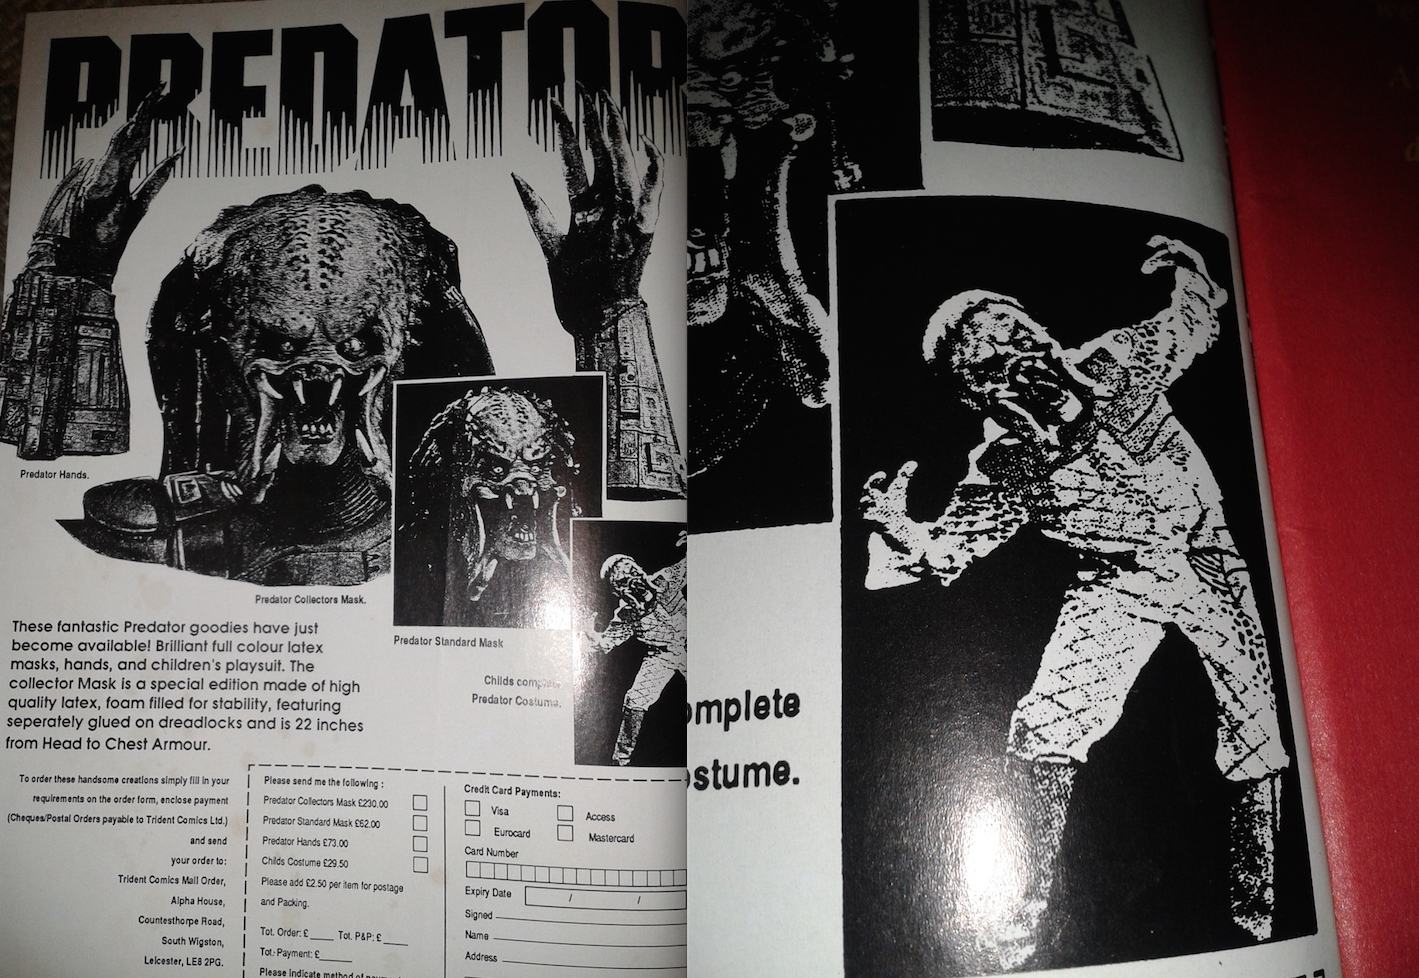 Predator Merchandise Advert - 1990s